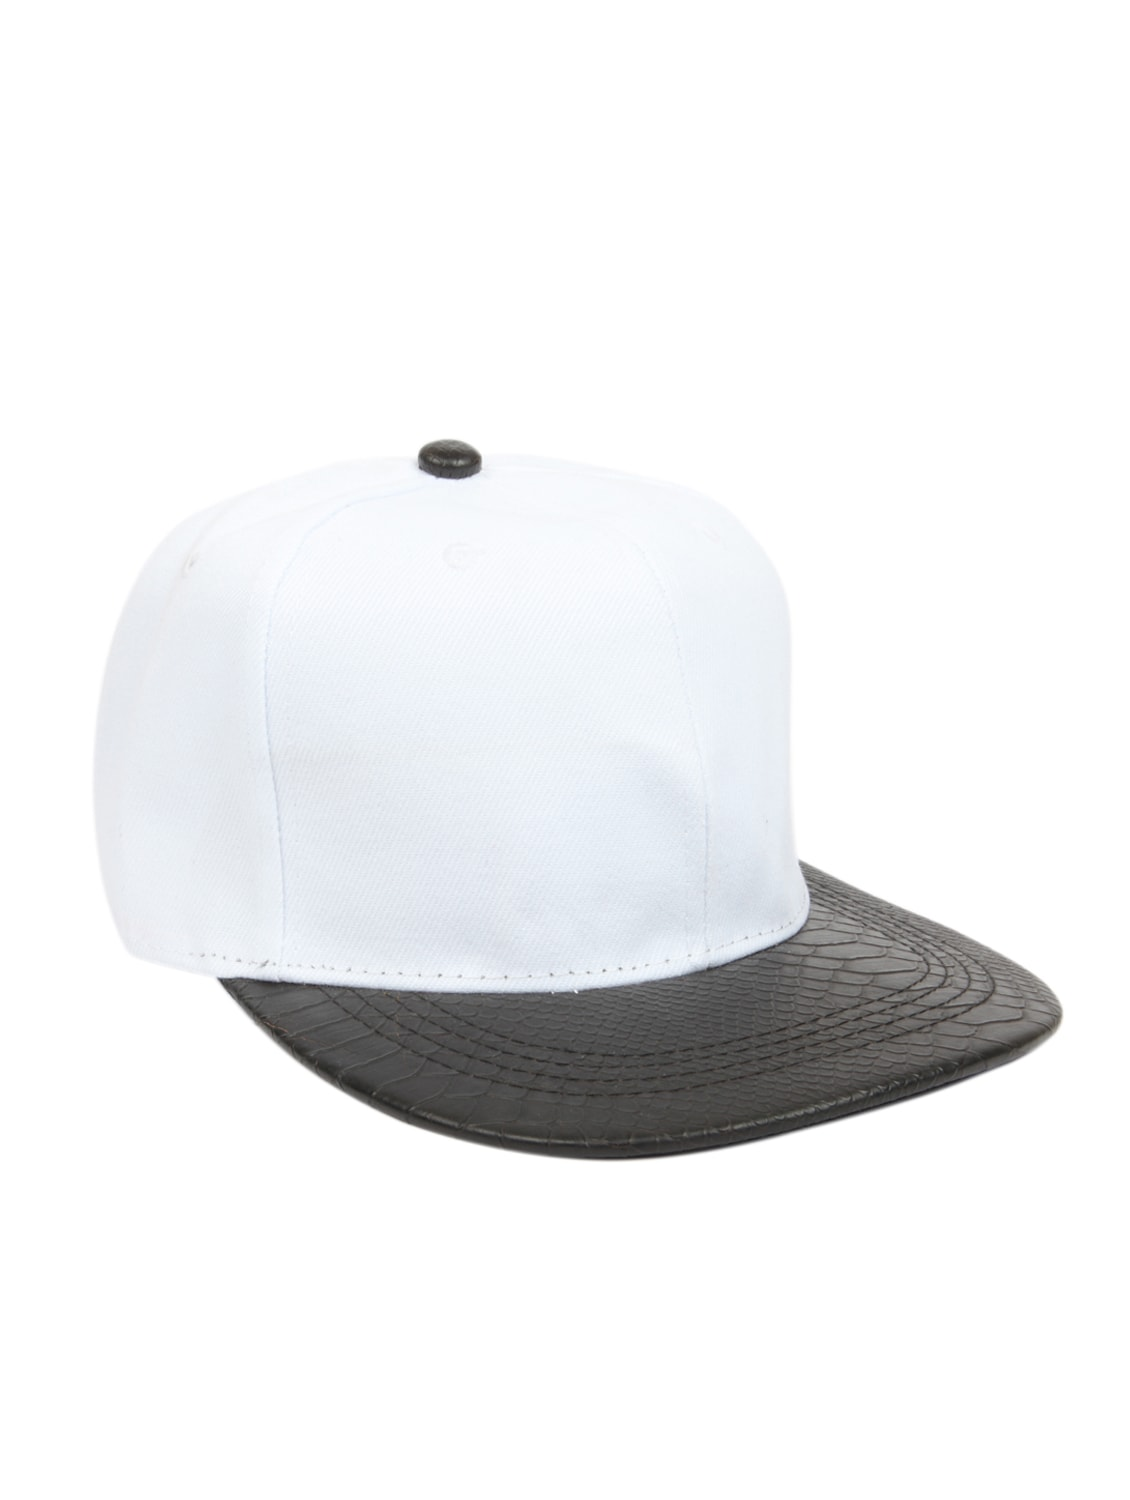 8726de86491 Buy Ilu Leather Caps Hats Men Women Snapback Hiphop Baseball Caps by  Limeroad - Online shopping for Caps in India